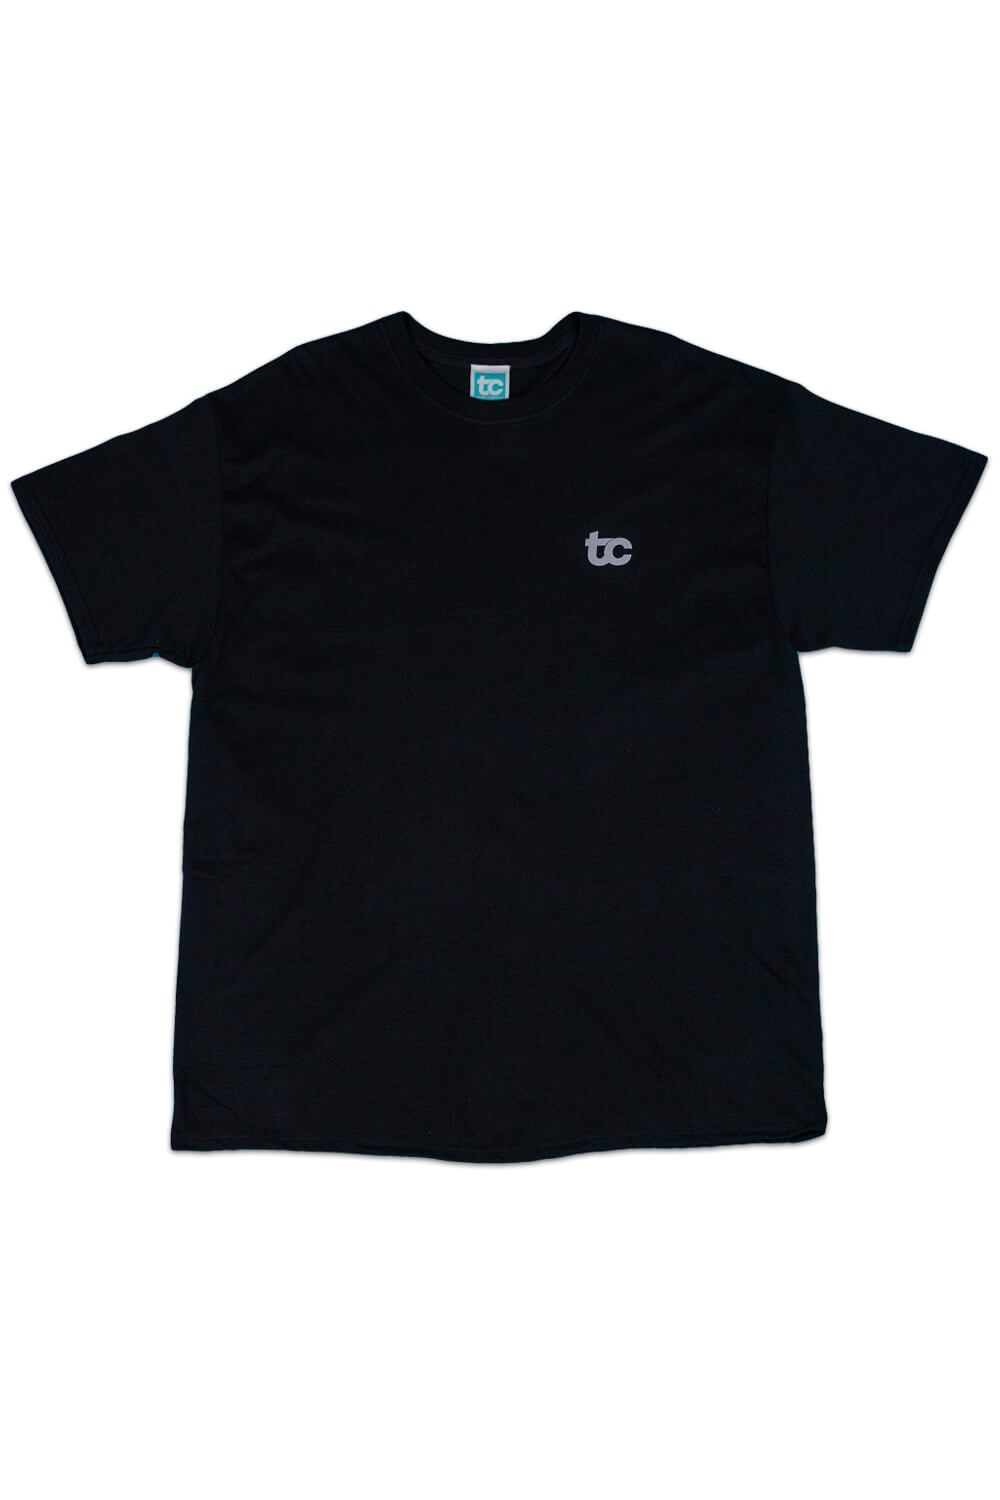 Reflective Smiley T-shirt Black